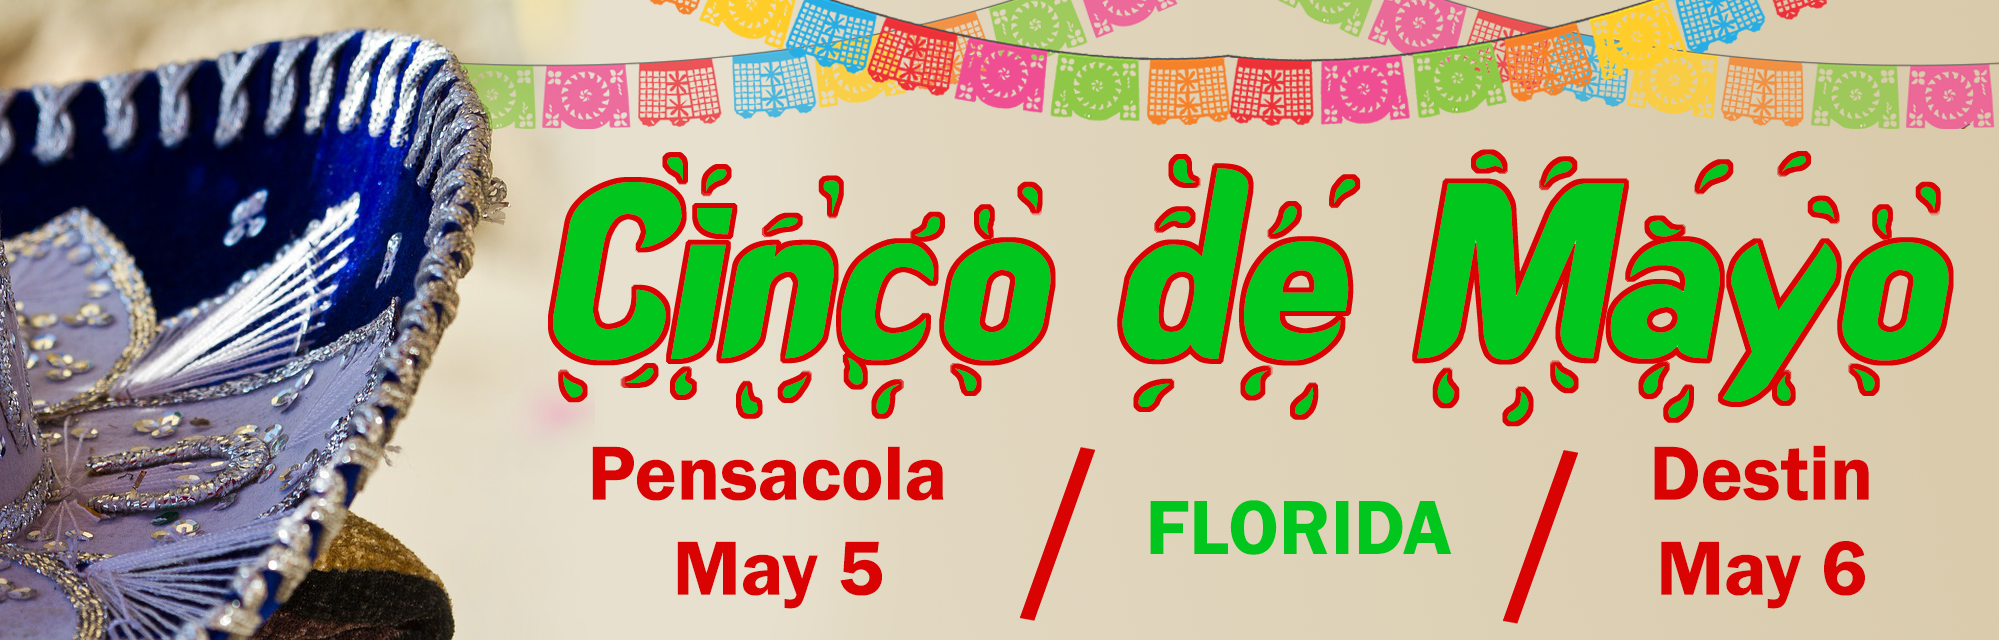 "Sombrero brim with the words ""Cinco de Mayo Pensacola May 5, Florida, Destin May 6"